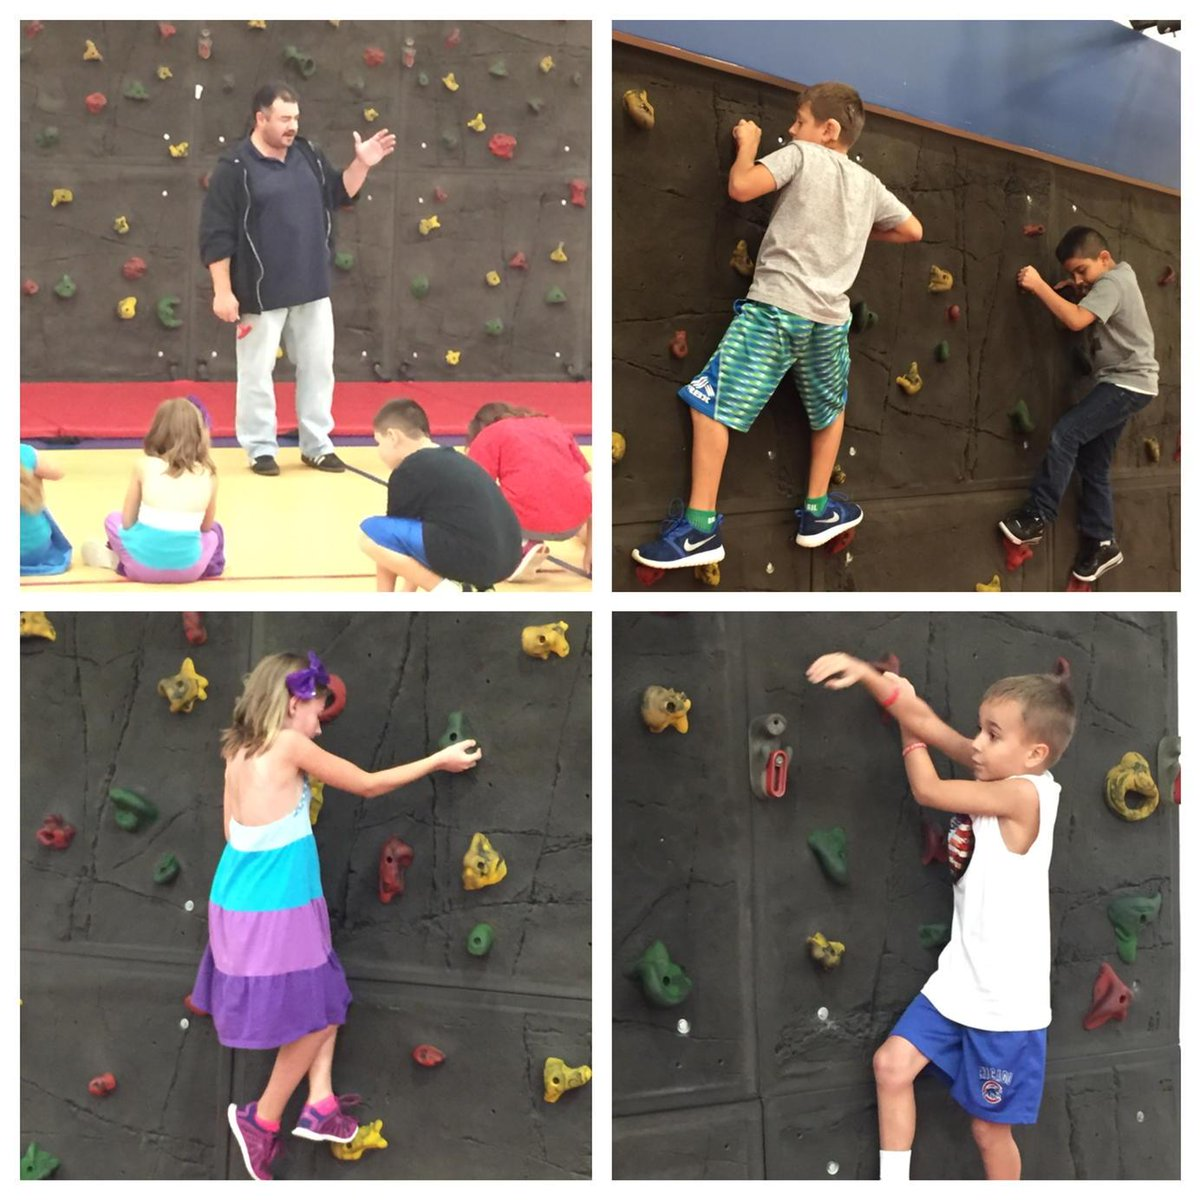 After learning how to stay safe, 3rd graders are excited to use the climbing wall in P.E.! #wdsd7 #justkeepclimbing http://t.co/skgkmz8Ayt